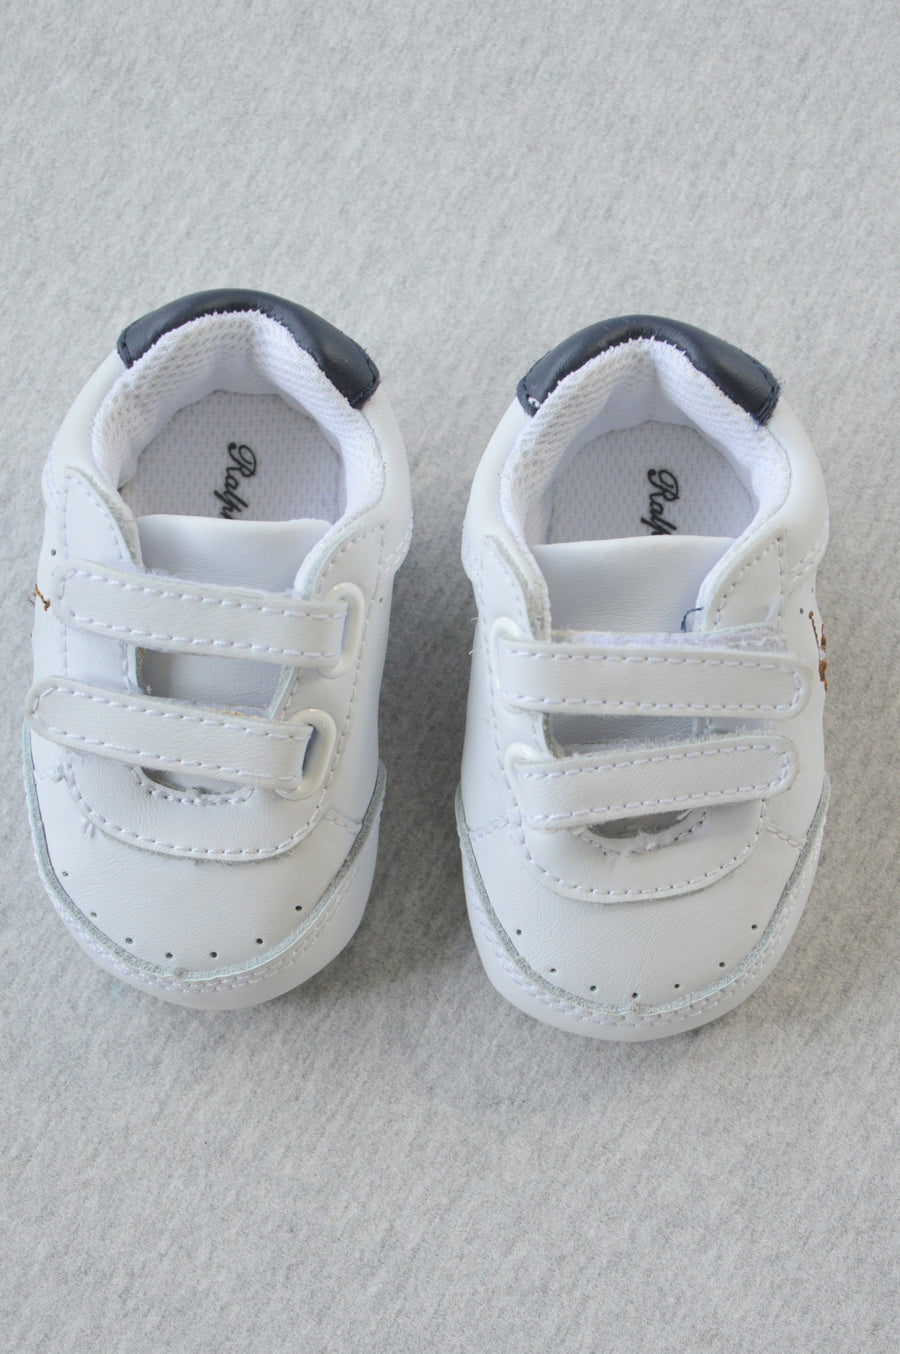 Ralph Lauren - nearly new - white leather sneaker shoes, size 3-9m (shoe size US 1)